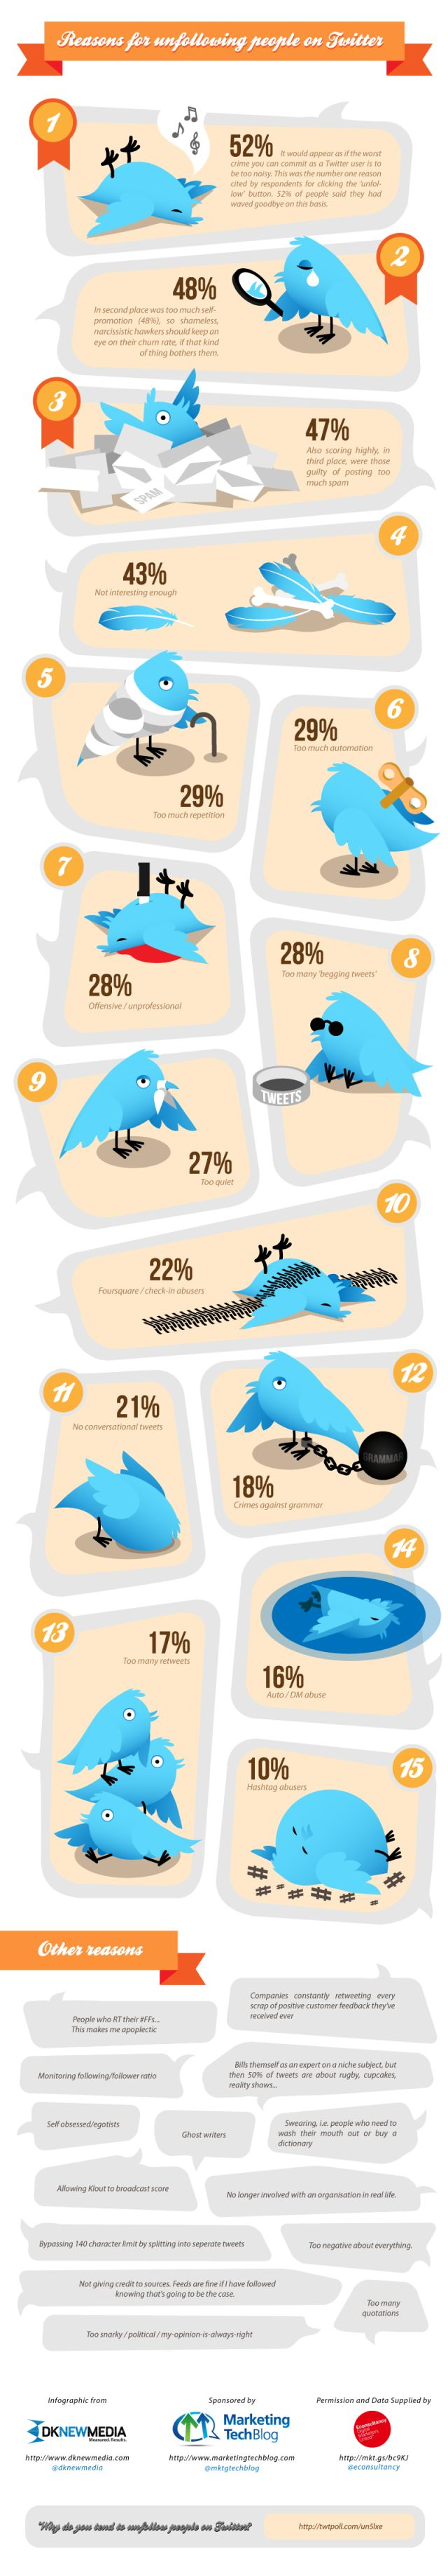 We *could* tag a certain co's Twitter acc or we could just post this: 15+ Ways to lose your Twitter followers [Infographic]...